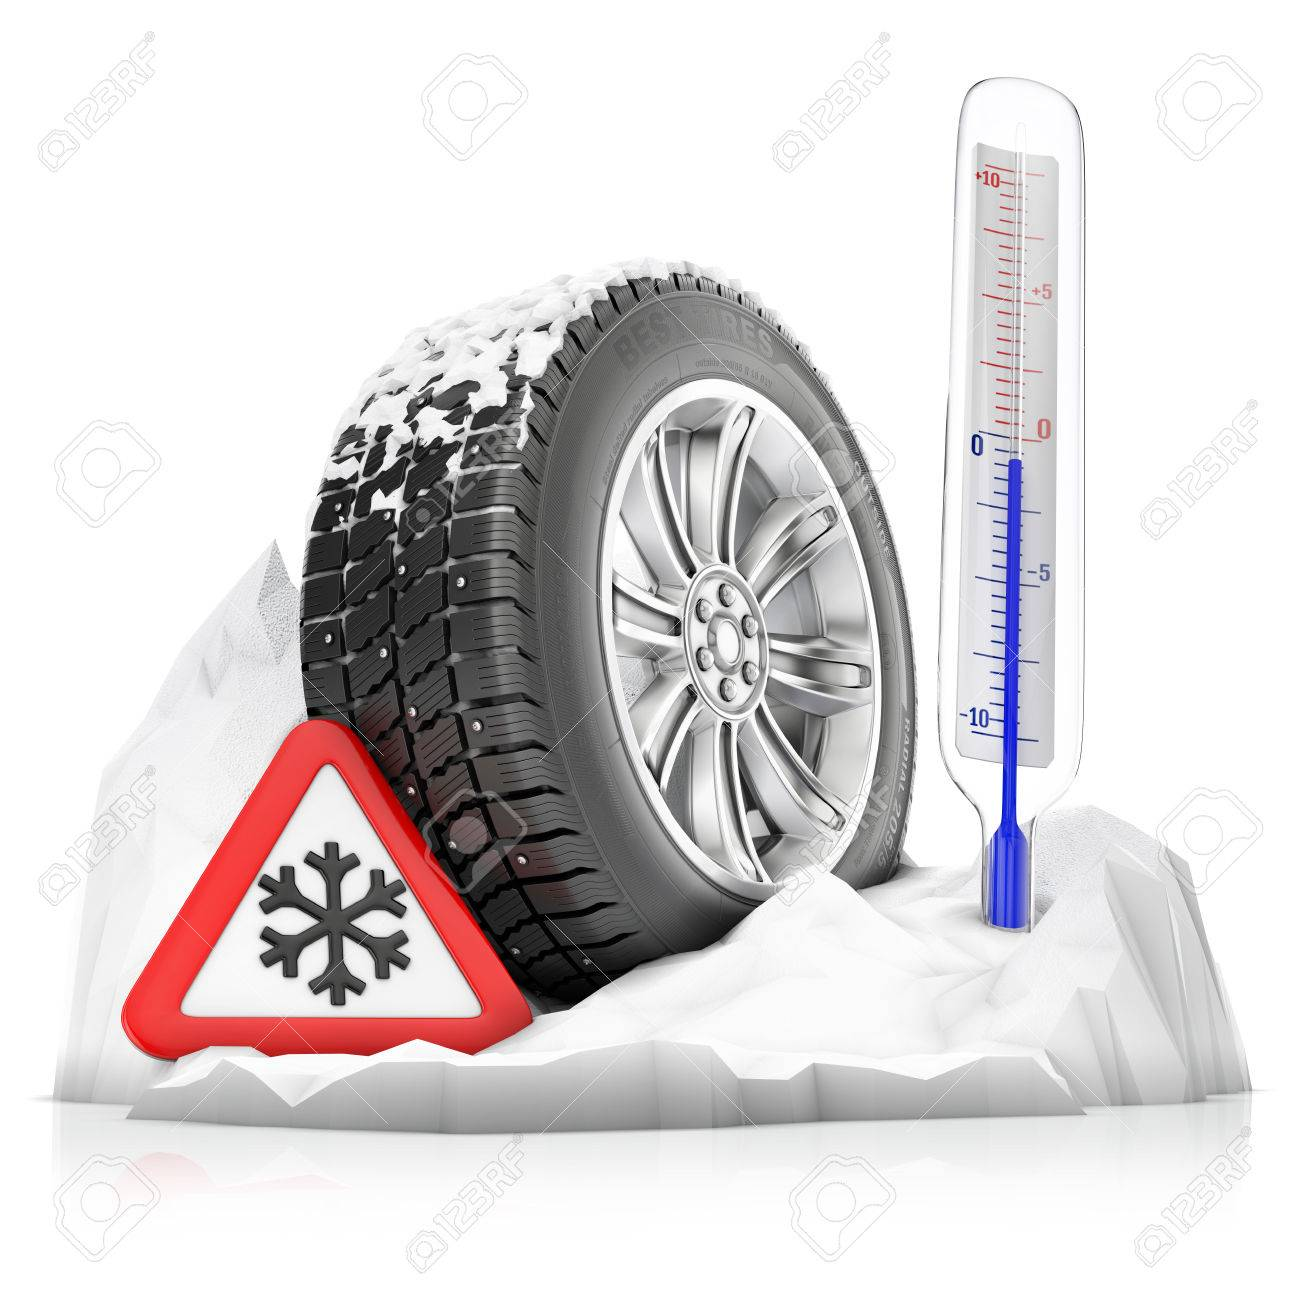 a snowbound studded winter tire with warning sign and thermometer, concept isolated on a white background - 49937409